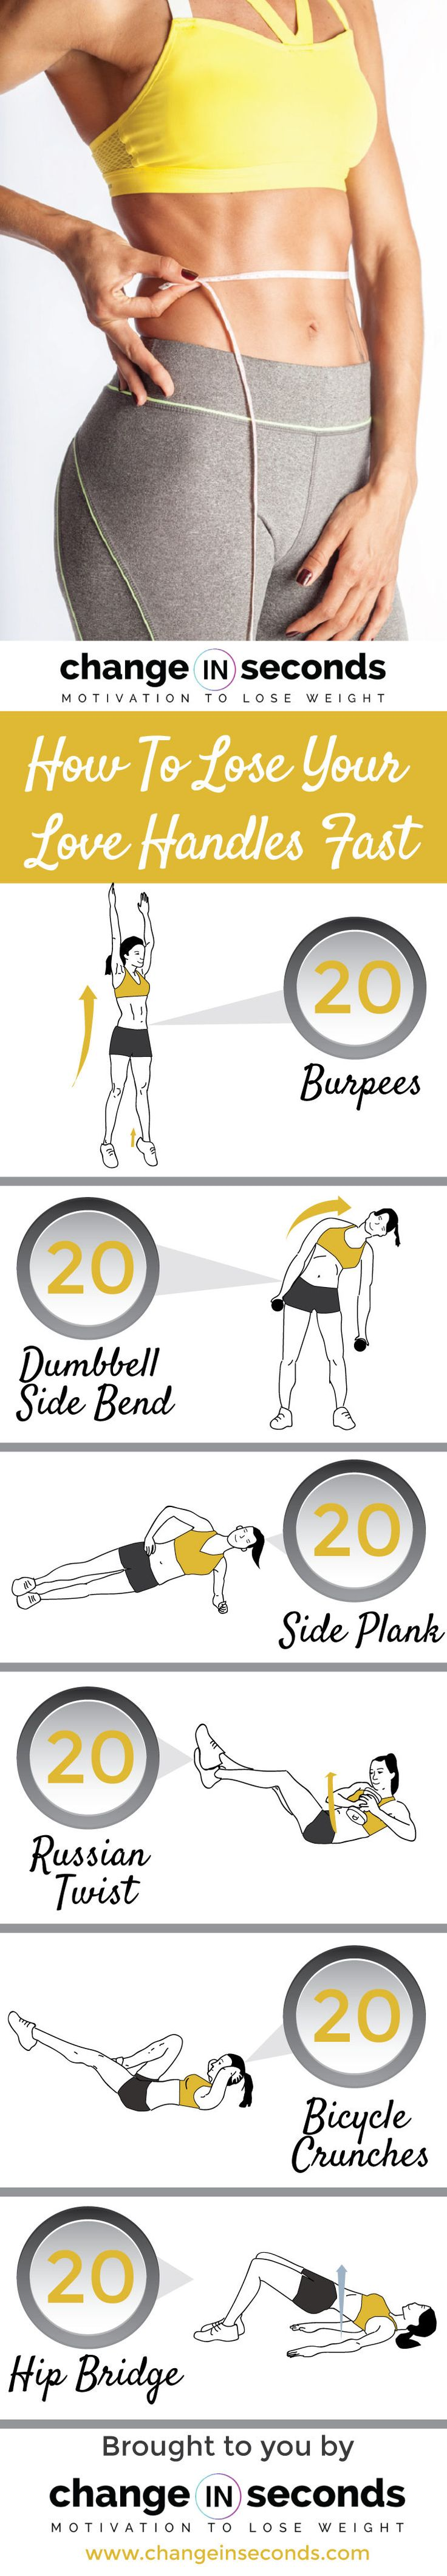 How To Lose Your Love Handles Fast Workout Download FREE PDF